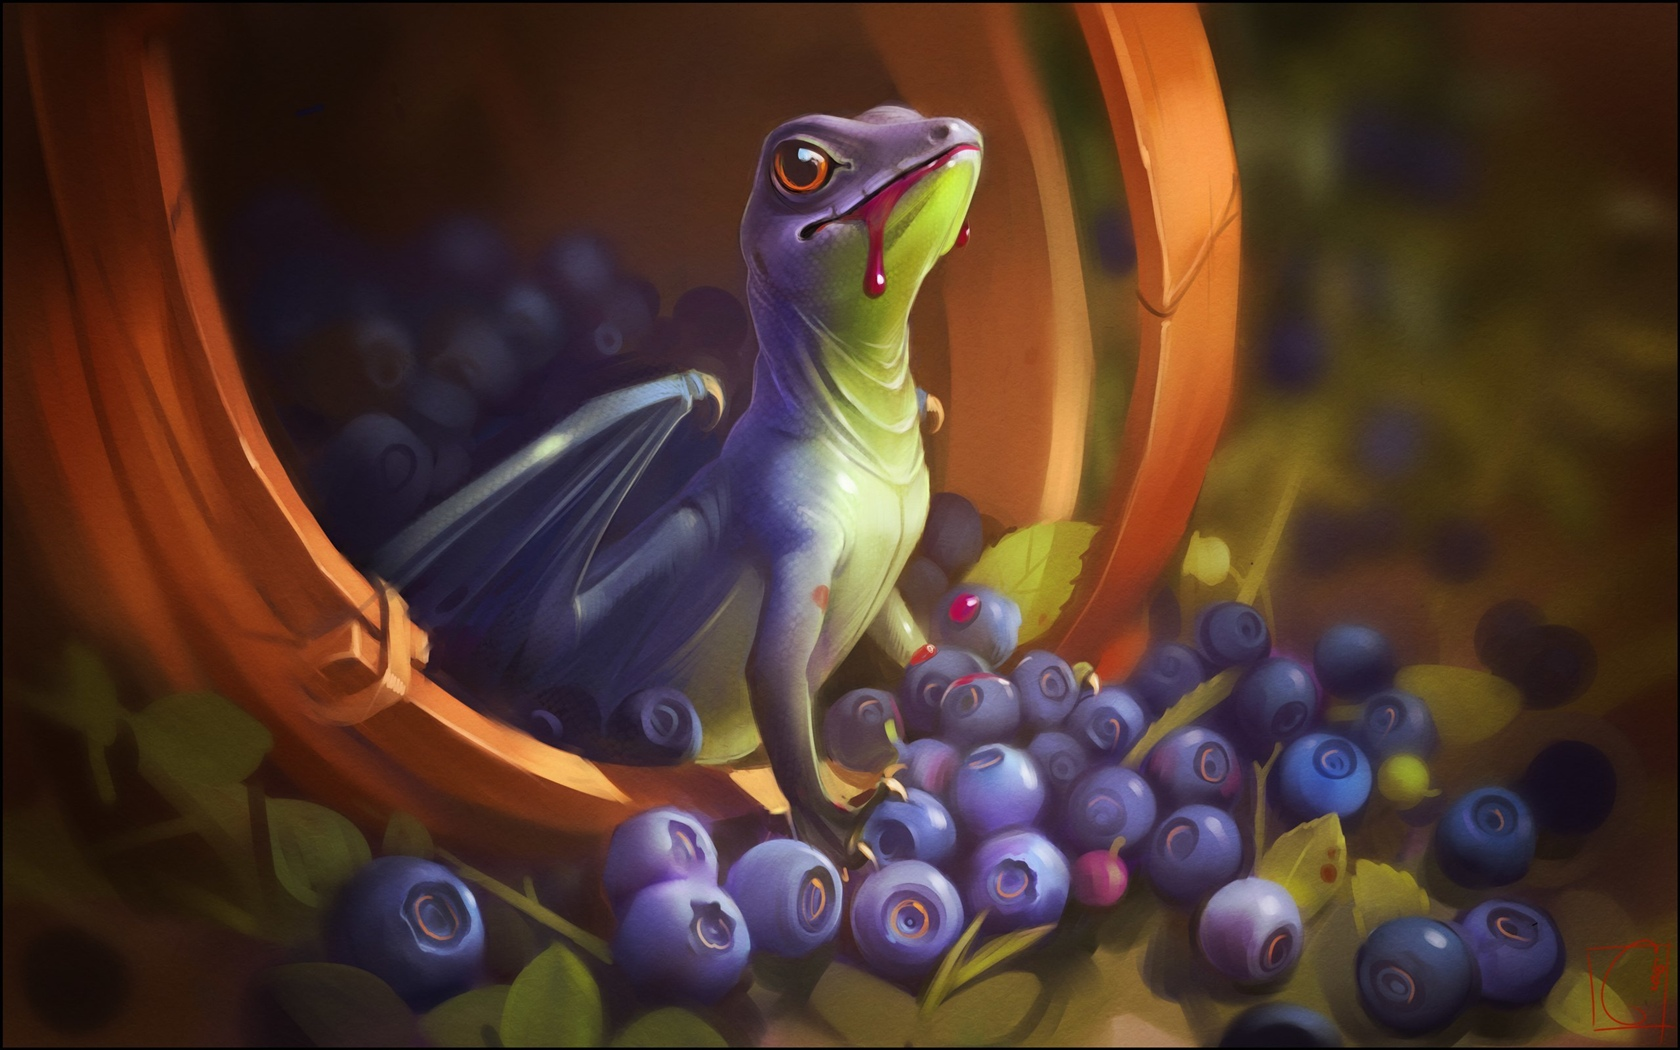 Dragon, wings, blood, blueberry, art picture 1680x1050 wallpaper